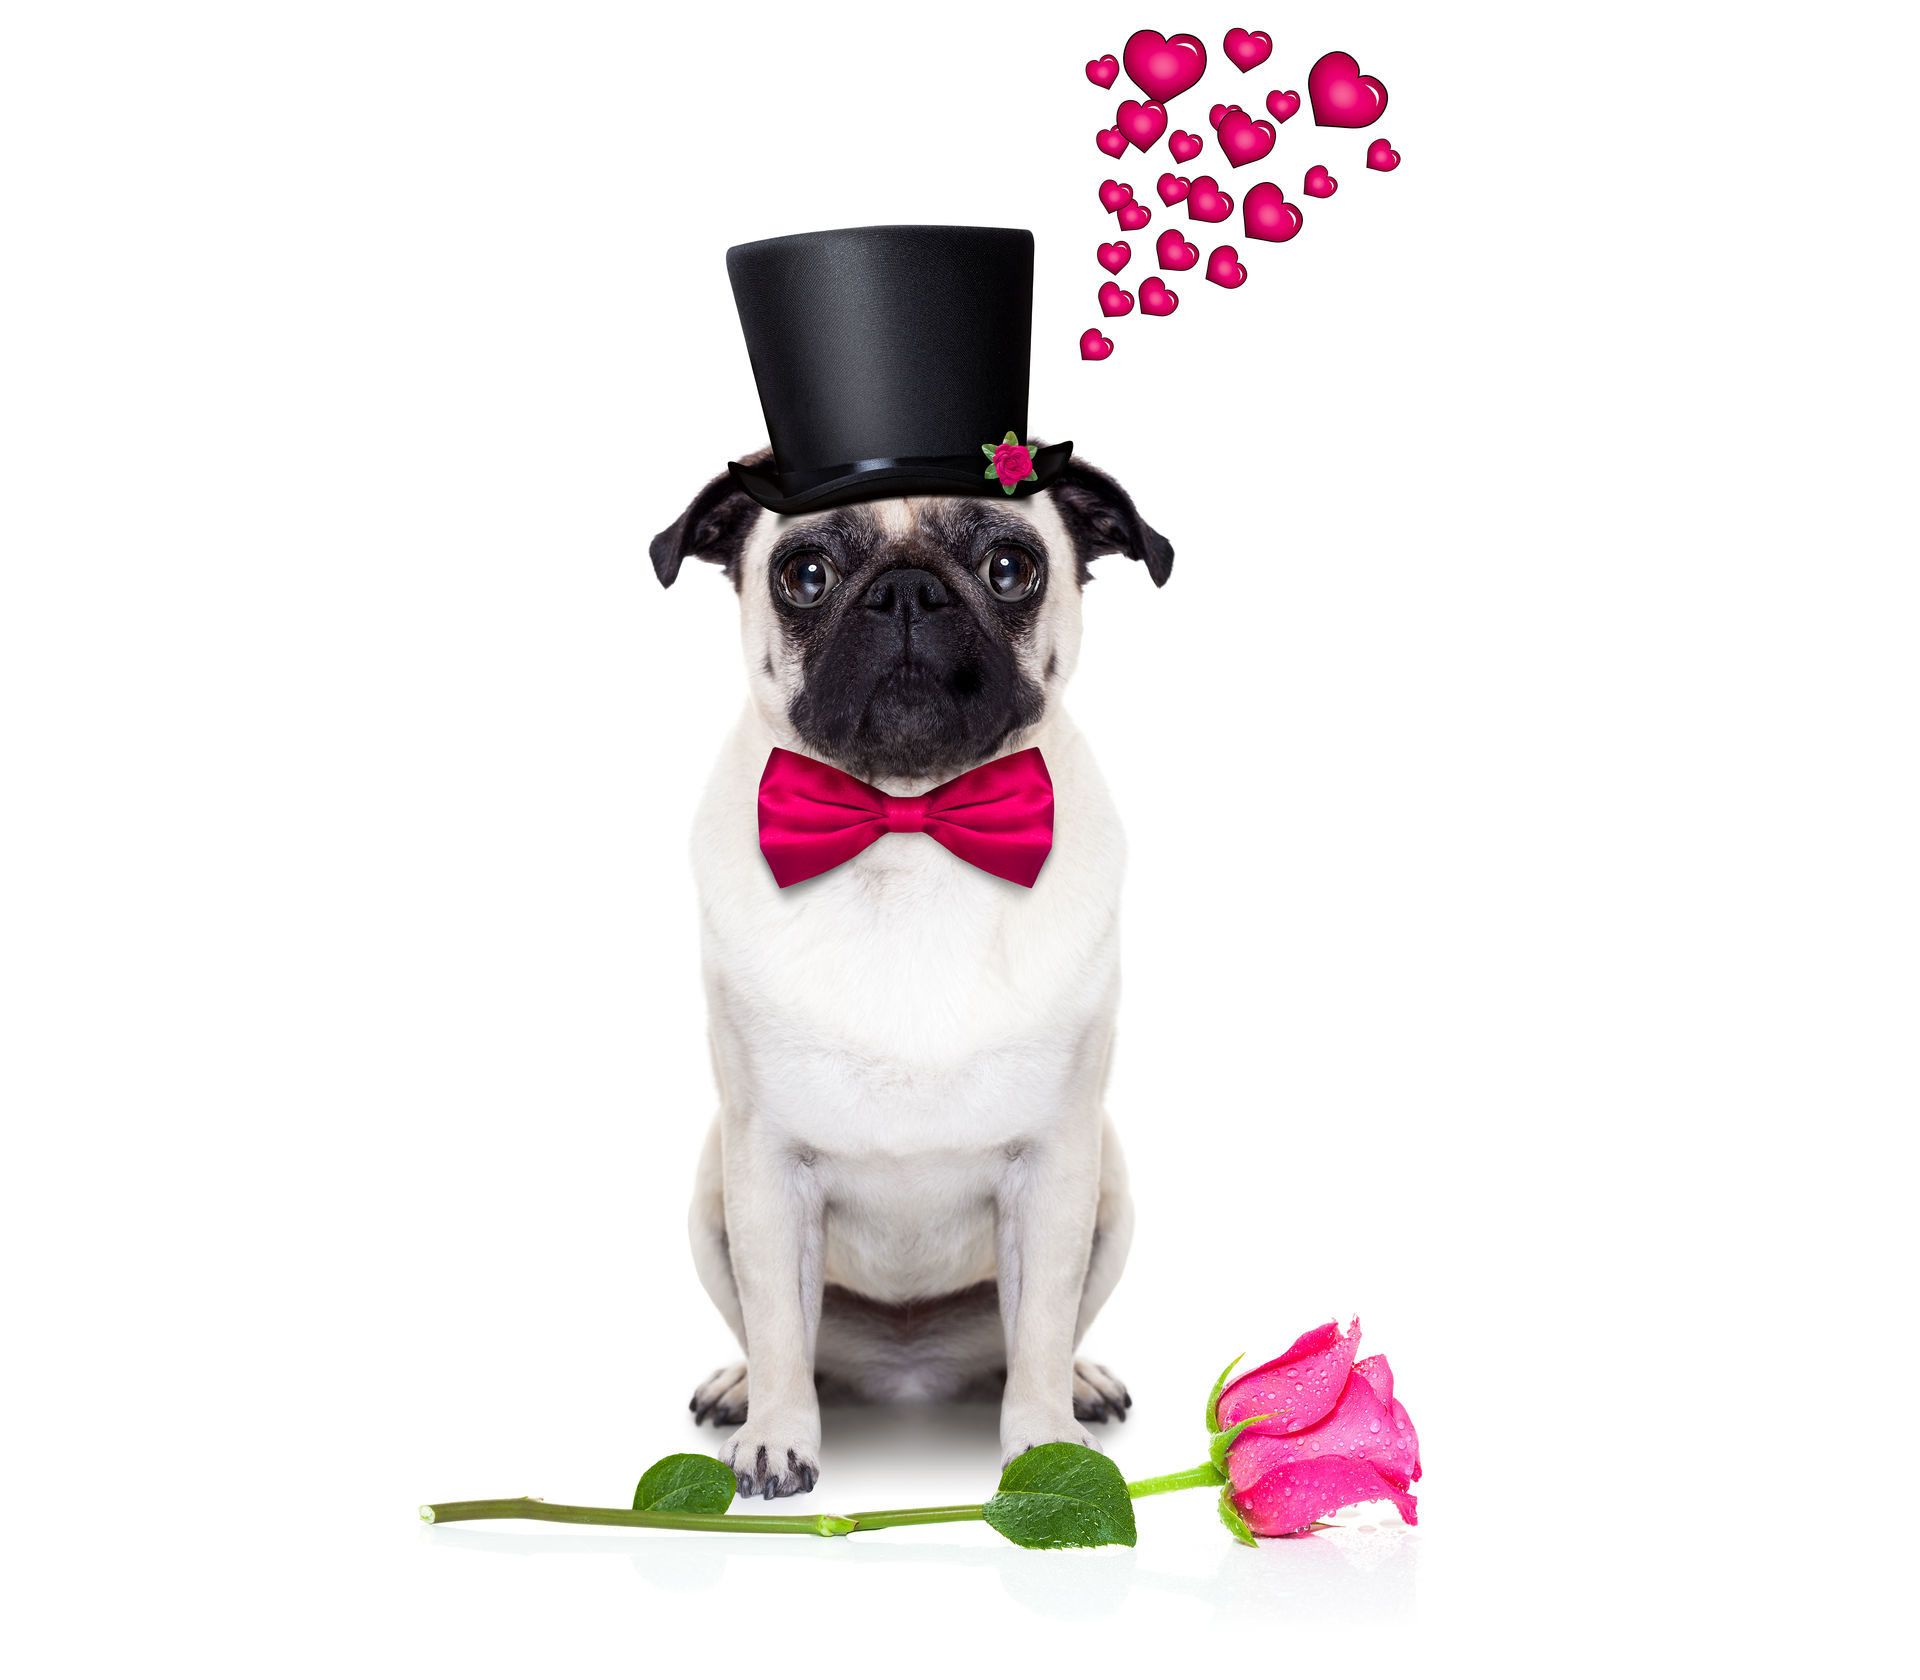 Valentine's Day Wallpaper Pug. Wallpapers Of Cute Dogs And